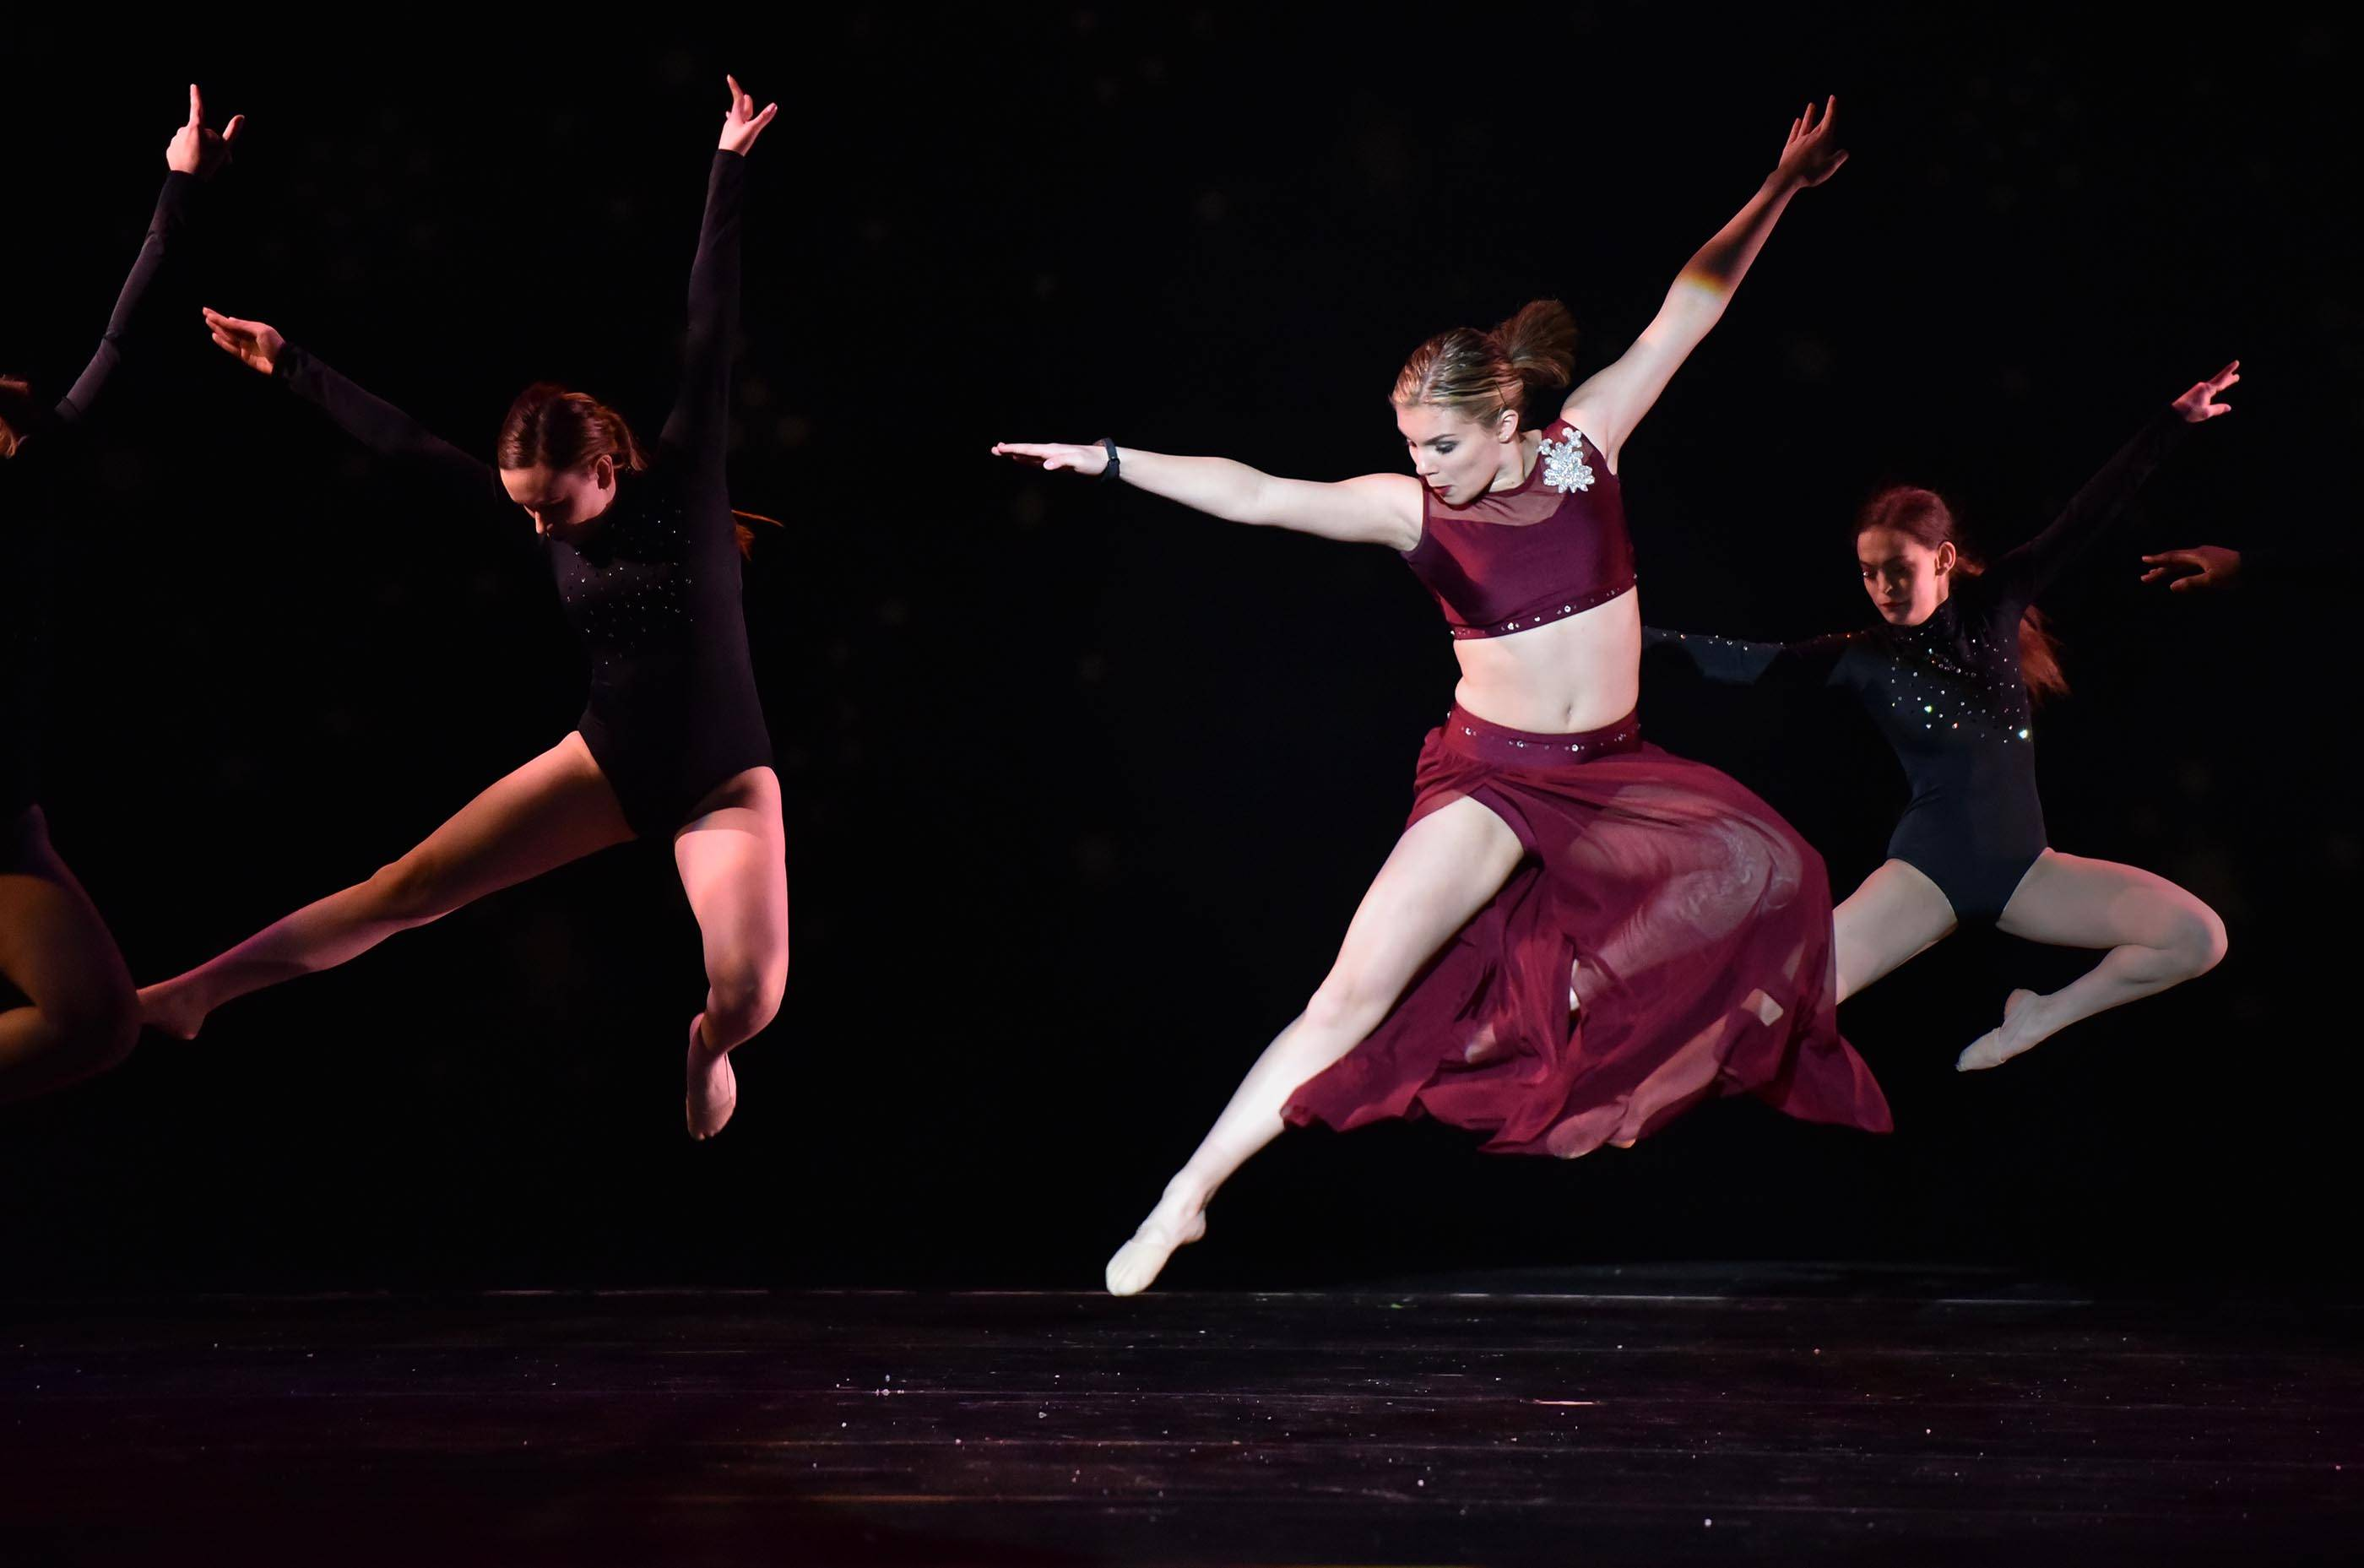 Sydnie Babicz dances in the lead at a show earlier this year featuring 31 students at Larkin High School in Elgin, which hosts Elgin Area School District U-46's Visual and Performing Arts Academy. District officials are considering creating more high school career academies and pathways.